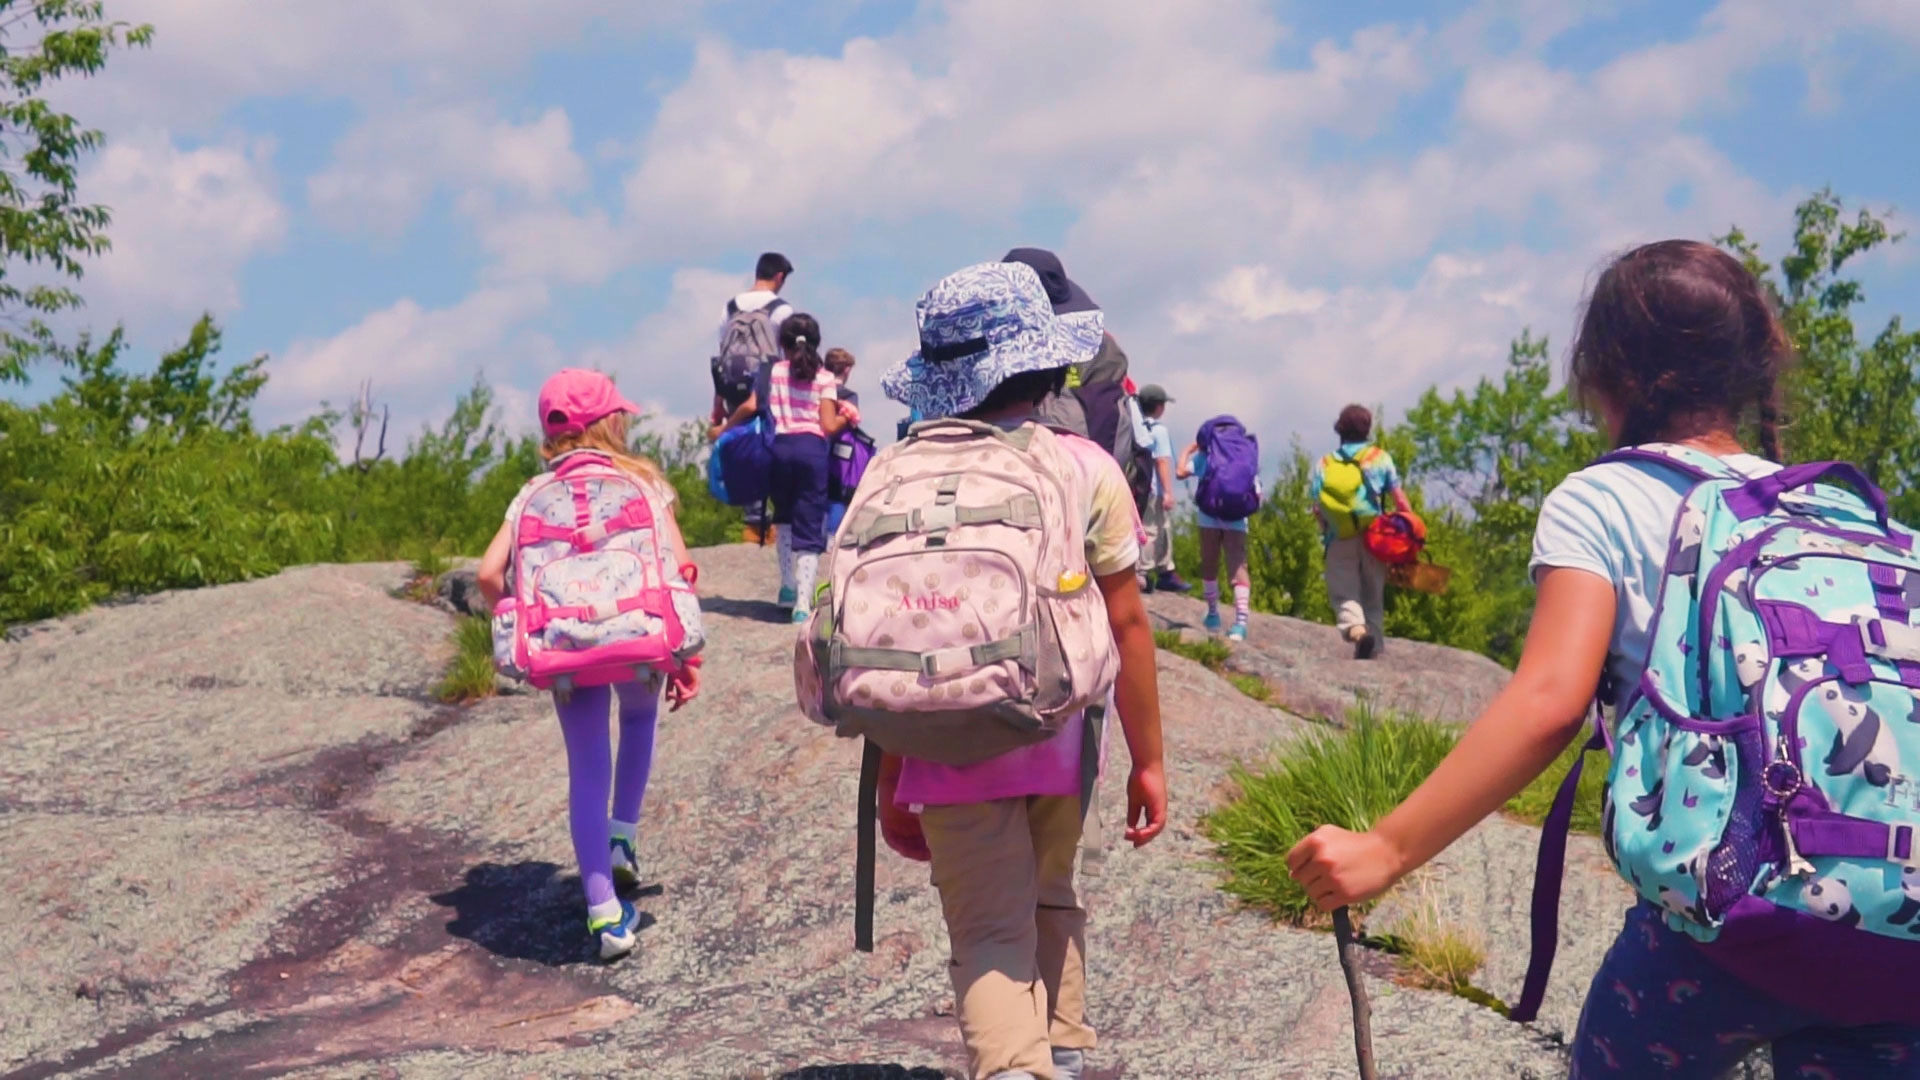 Campers hiking up a hill with full backpacks